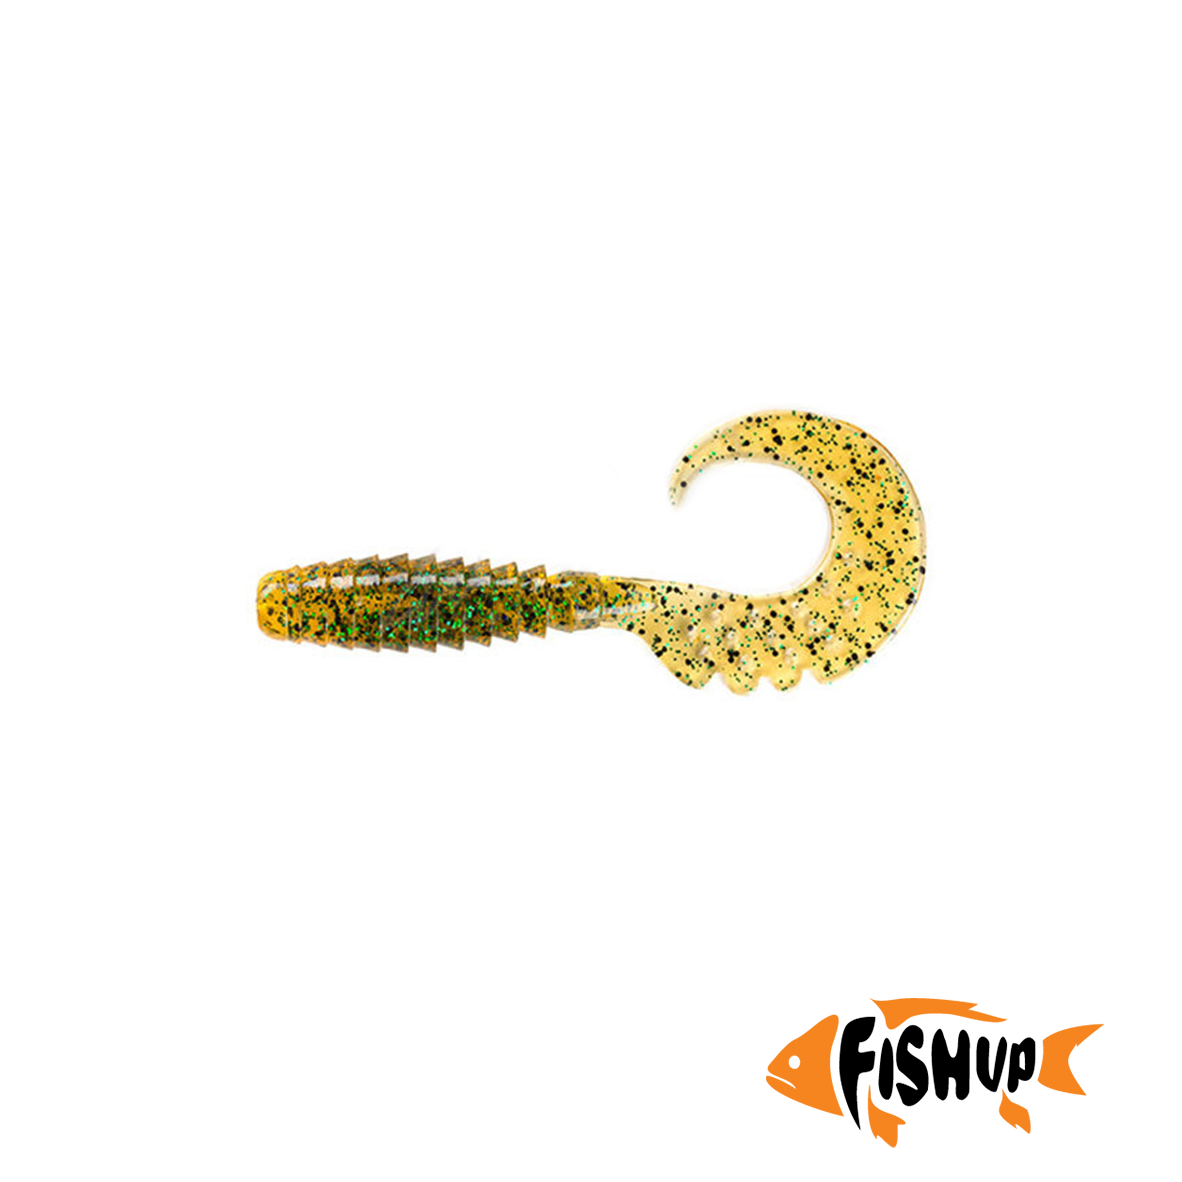 "Fancy Grub 2.5"" (10шт), #036 - Caramel/Green & Black"